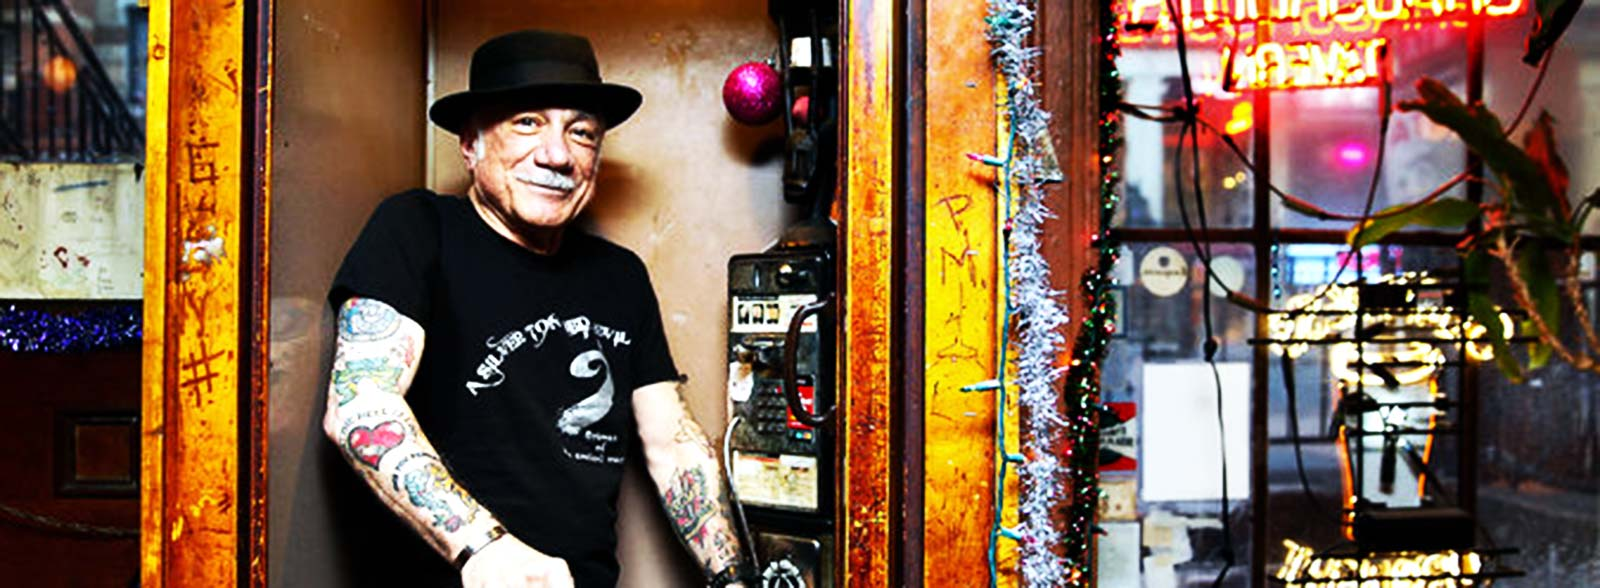 The poet Phillip Giambri at Grassroots Tavern on St. Marks Place, one of his frequent haunts. Credit Nicole Craine for The New York Times